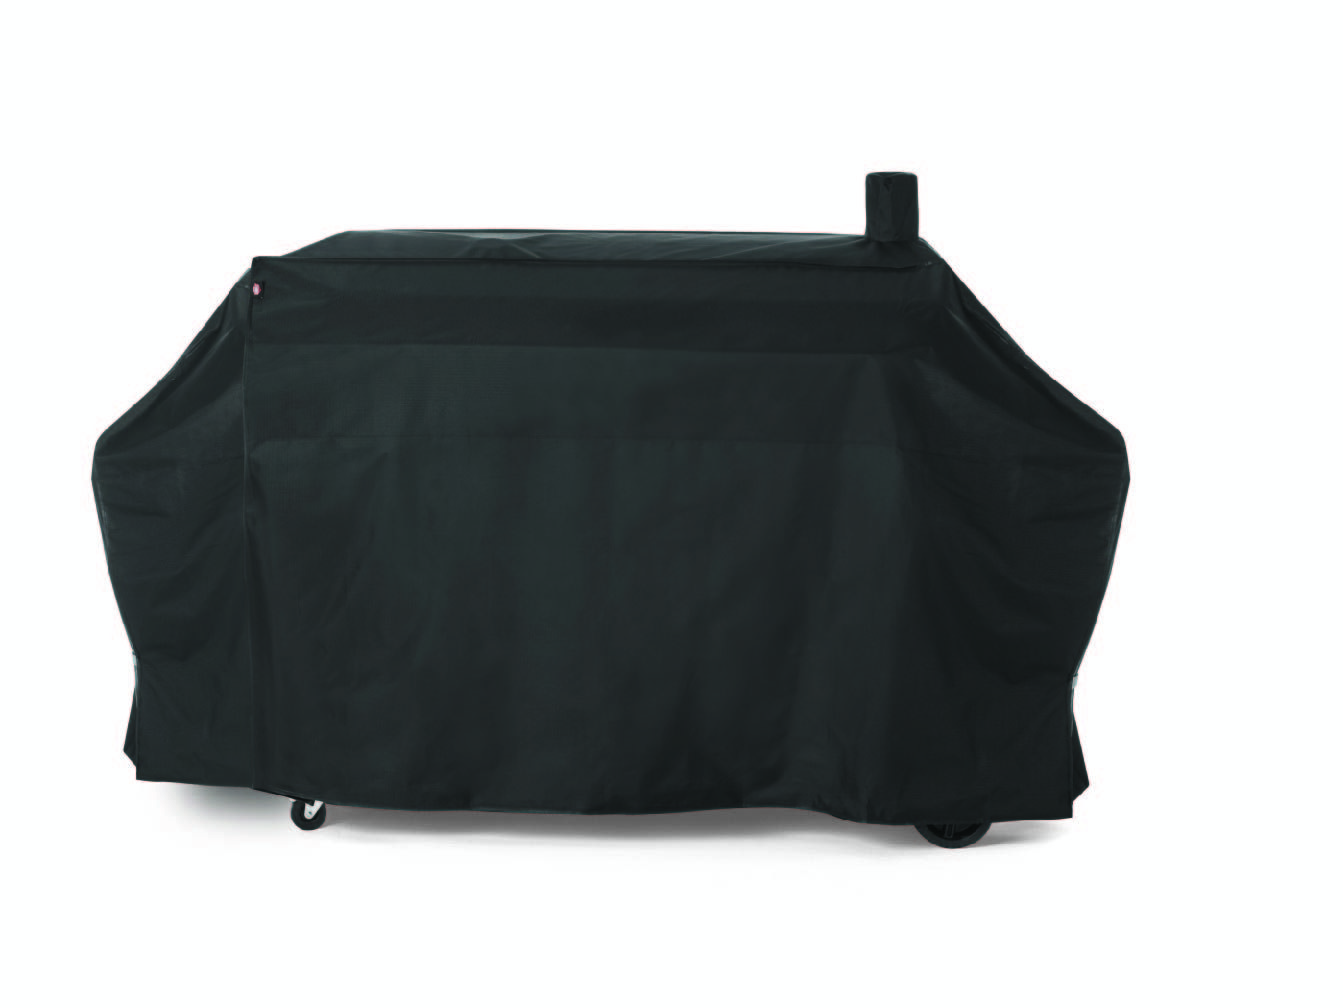 Expert Grill Heavy Duty 3 In 1 Dual Fuel Grill Cover Walmart Com In 2020 Dual Fuel Grill Grill Cover Weber Grill Cover